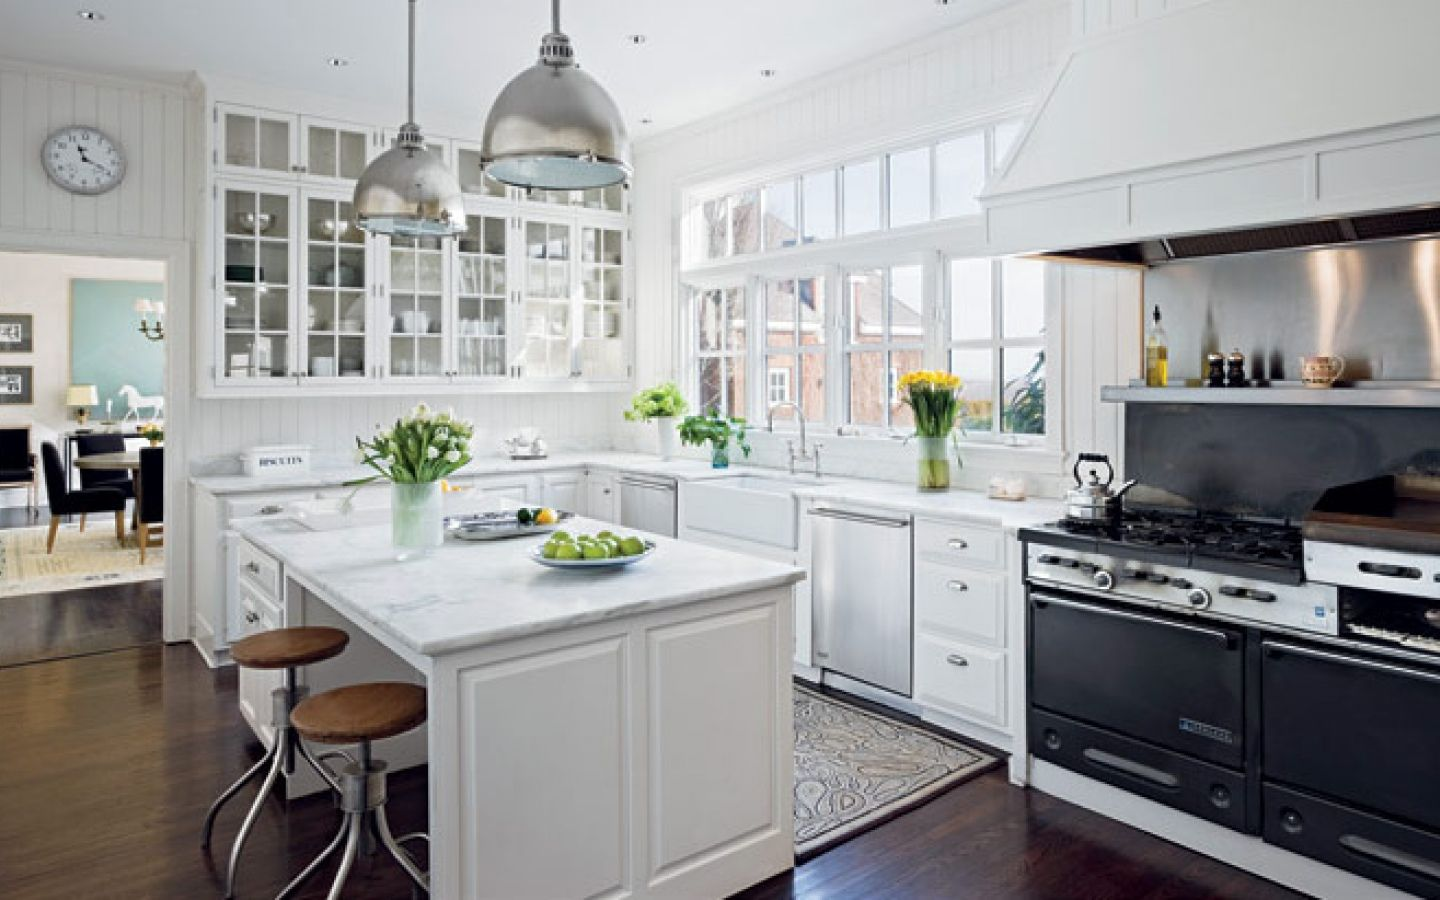 Modern Country Kitchen Design picture of modern country kitchen design with white cabinet